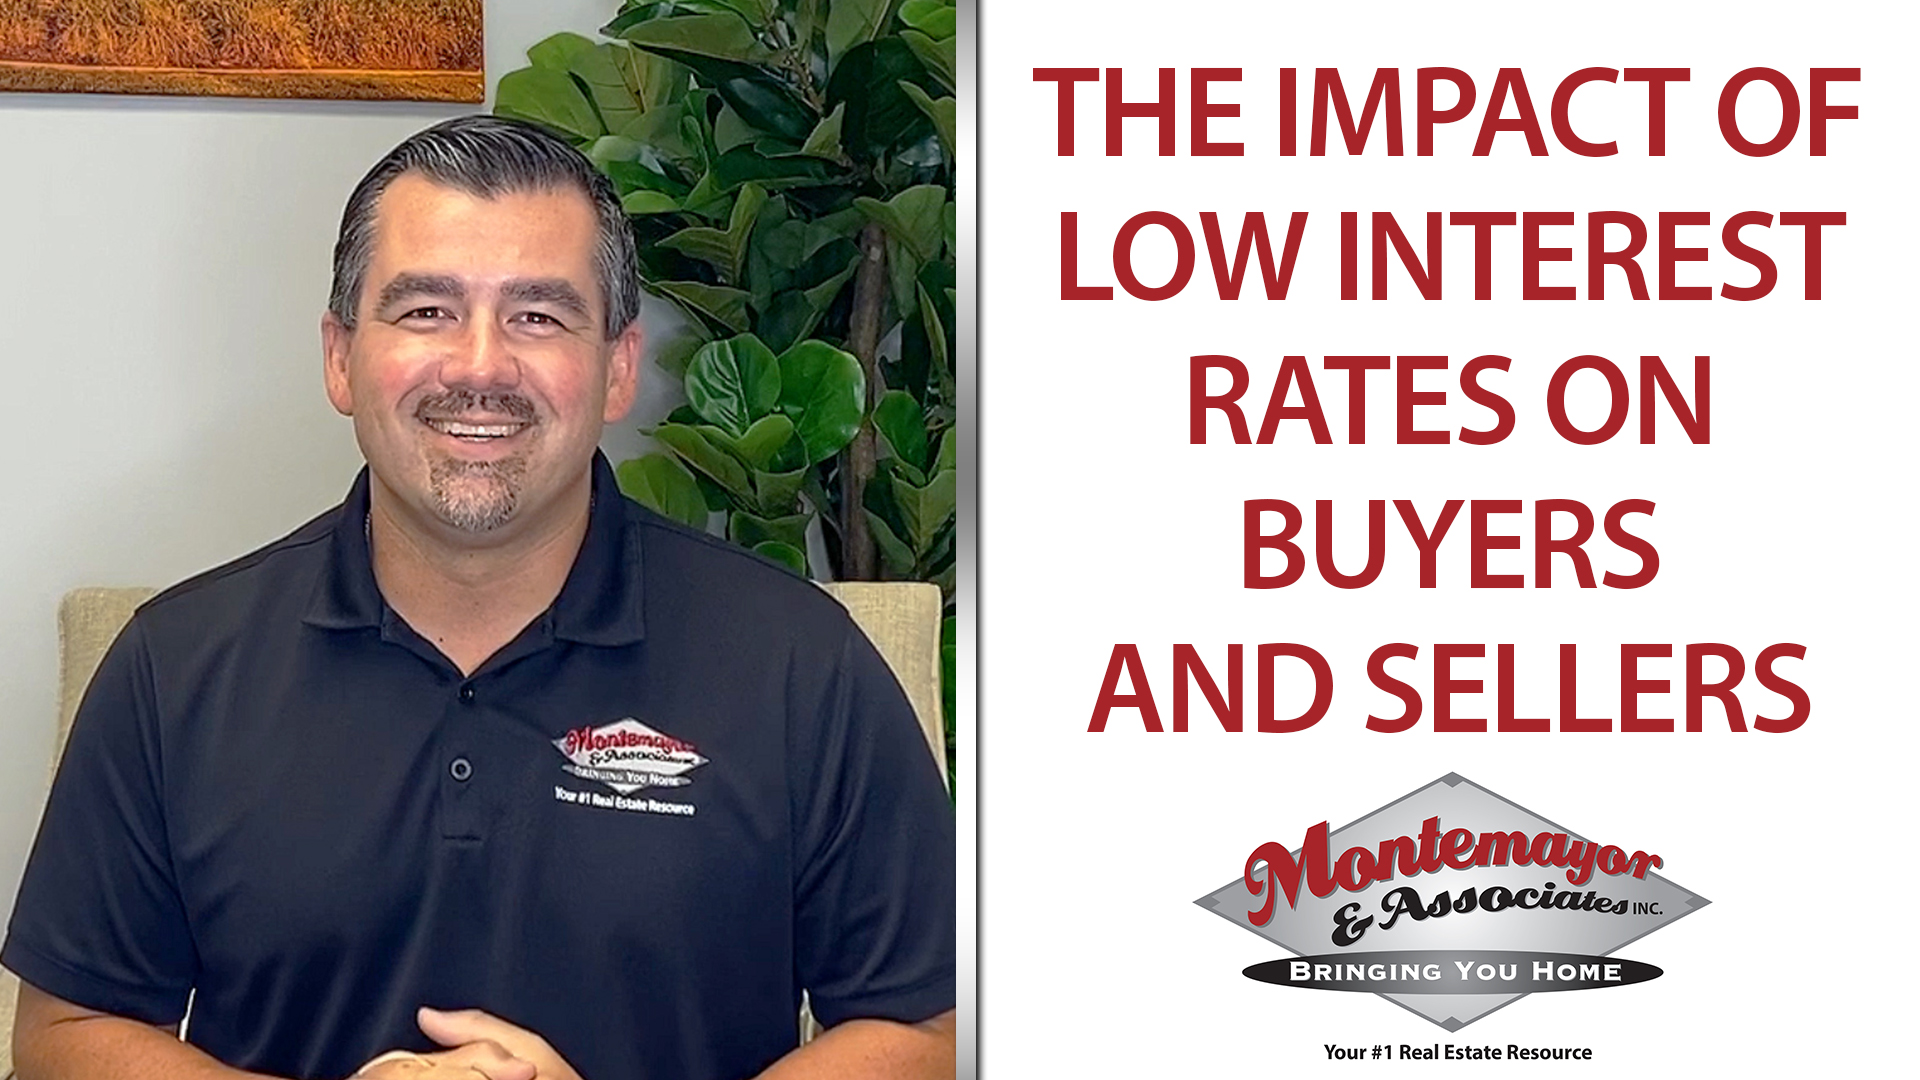 How Do Low Interest Rates Impact Buying and Selling?